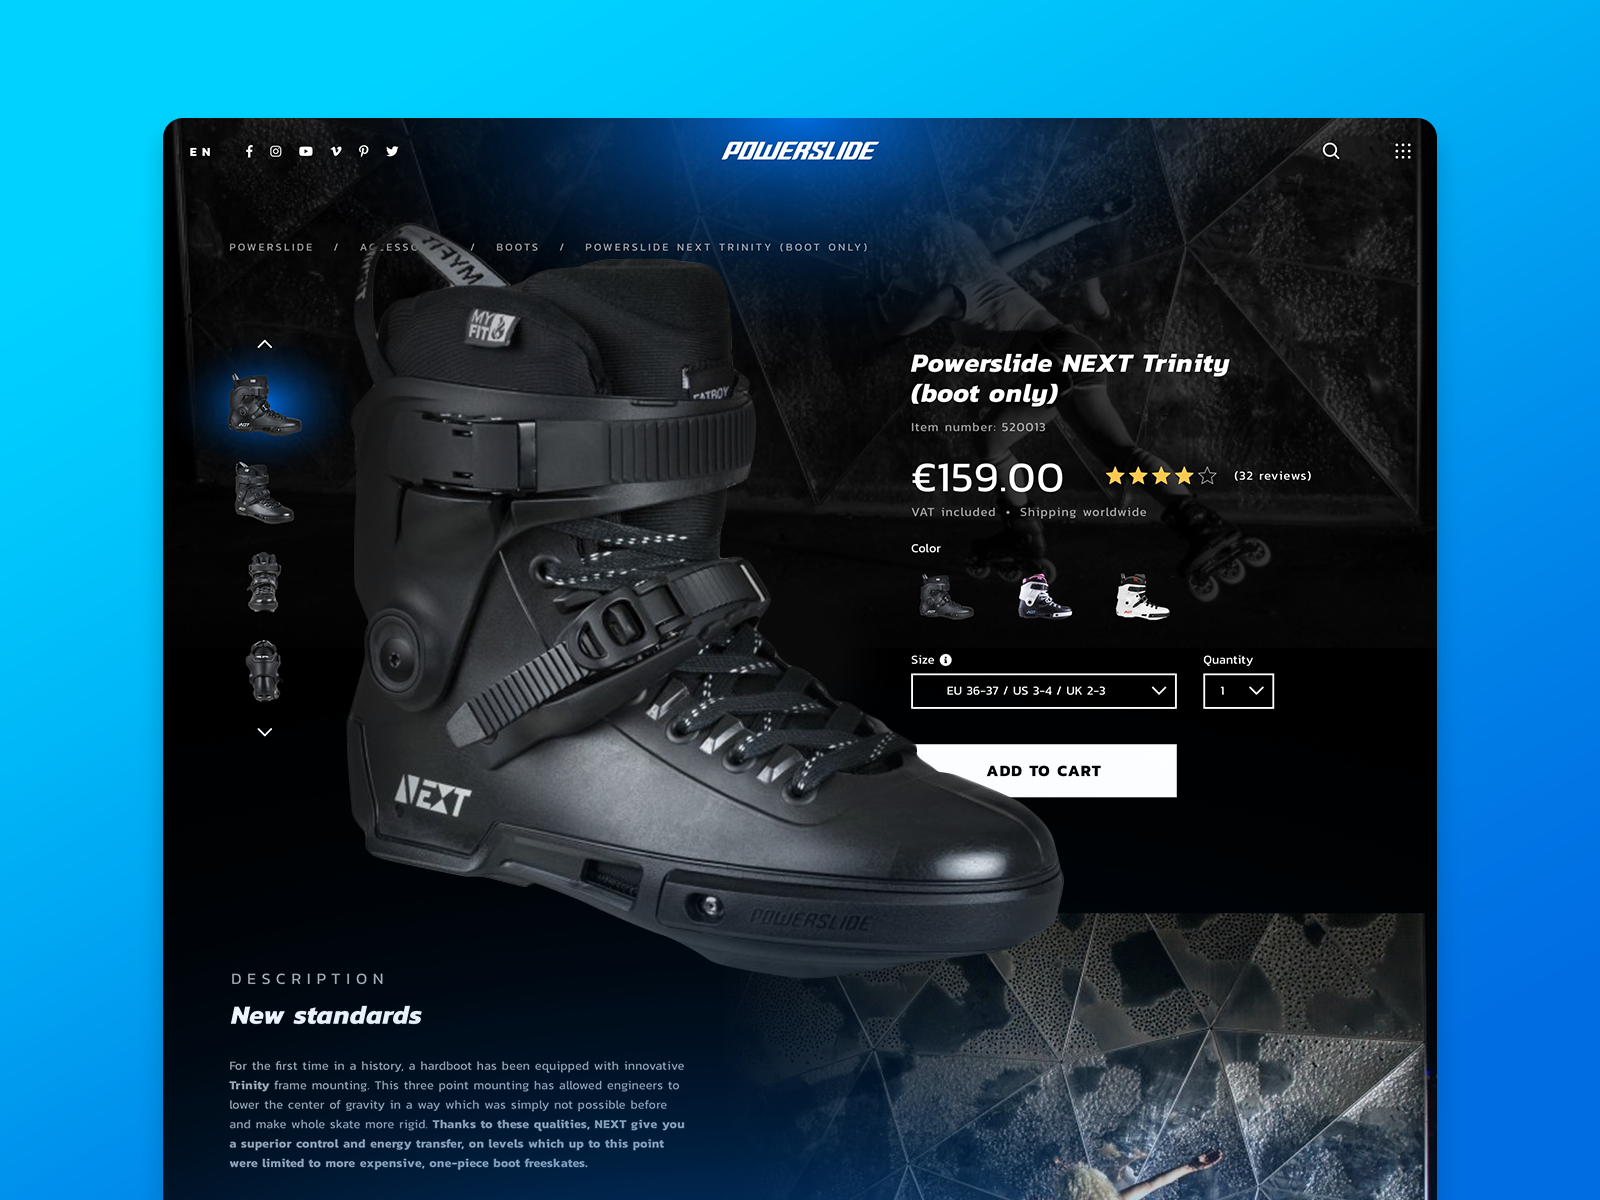 Powerslide redesign concept 2 featured